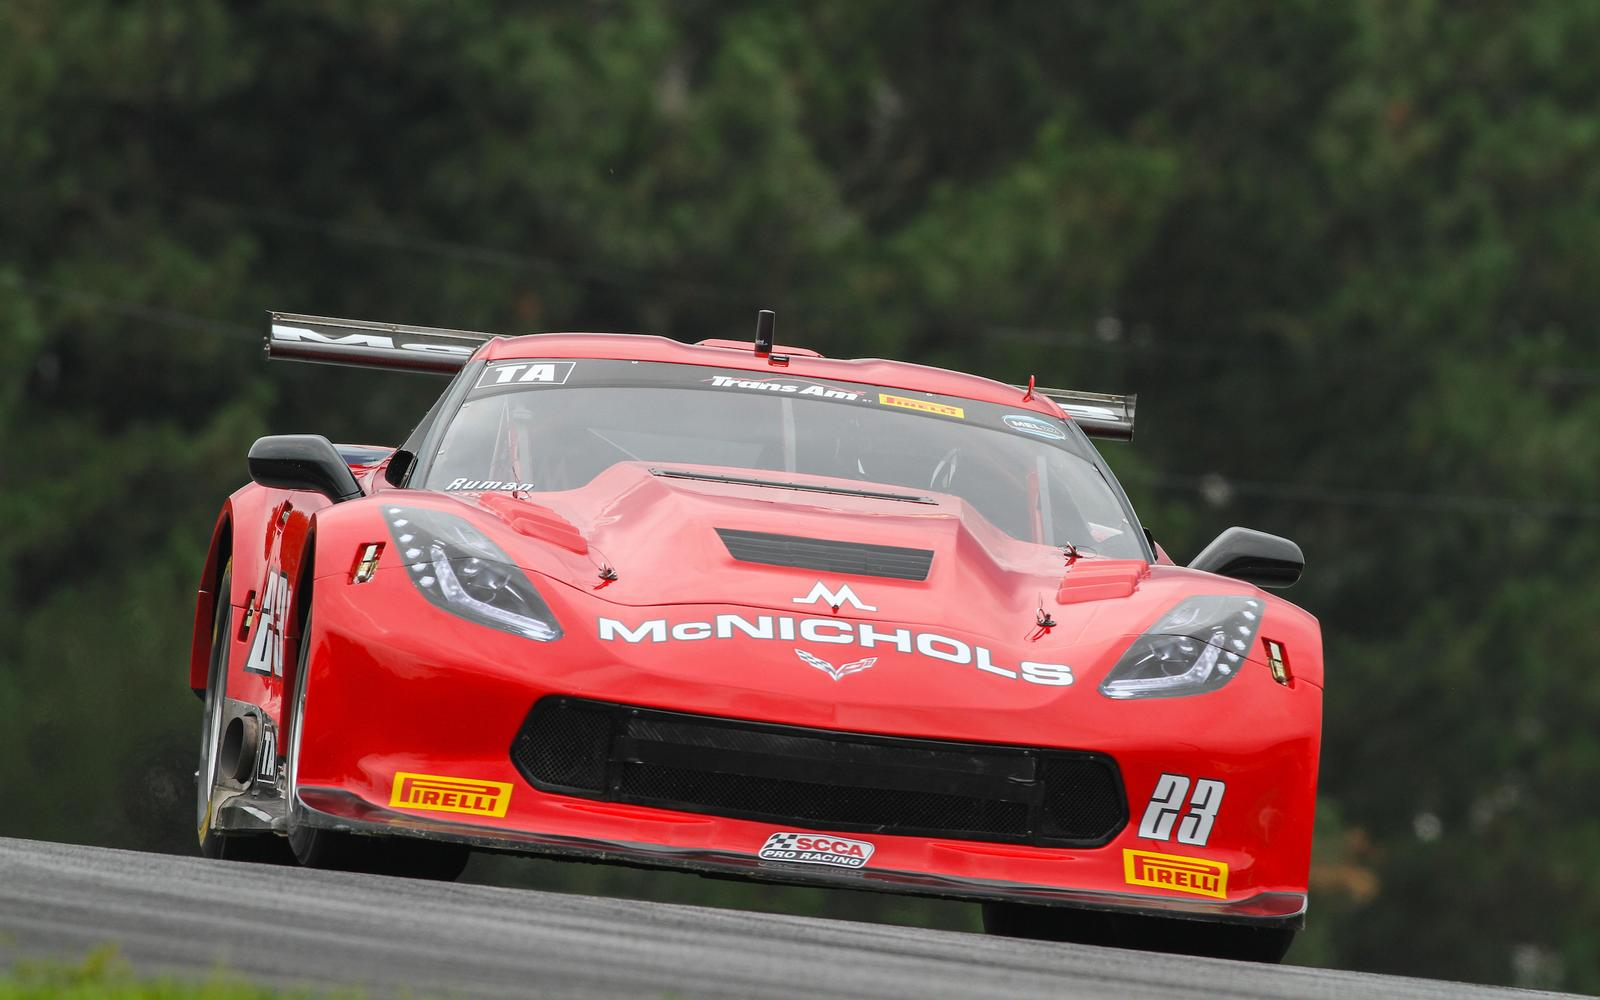 Amy Ruman Heads to Her Favorite Track, Watkins Glen, for Trans Am Round 9